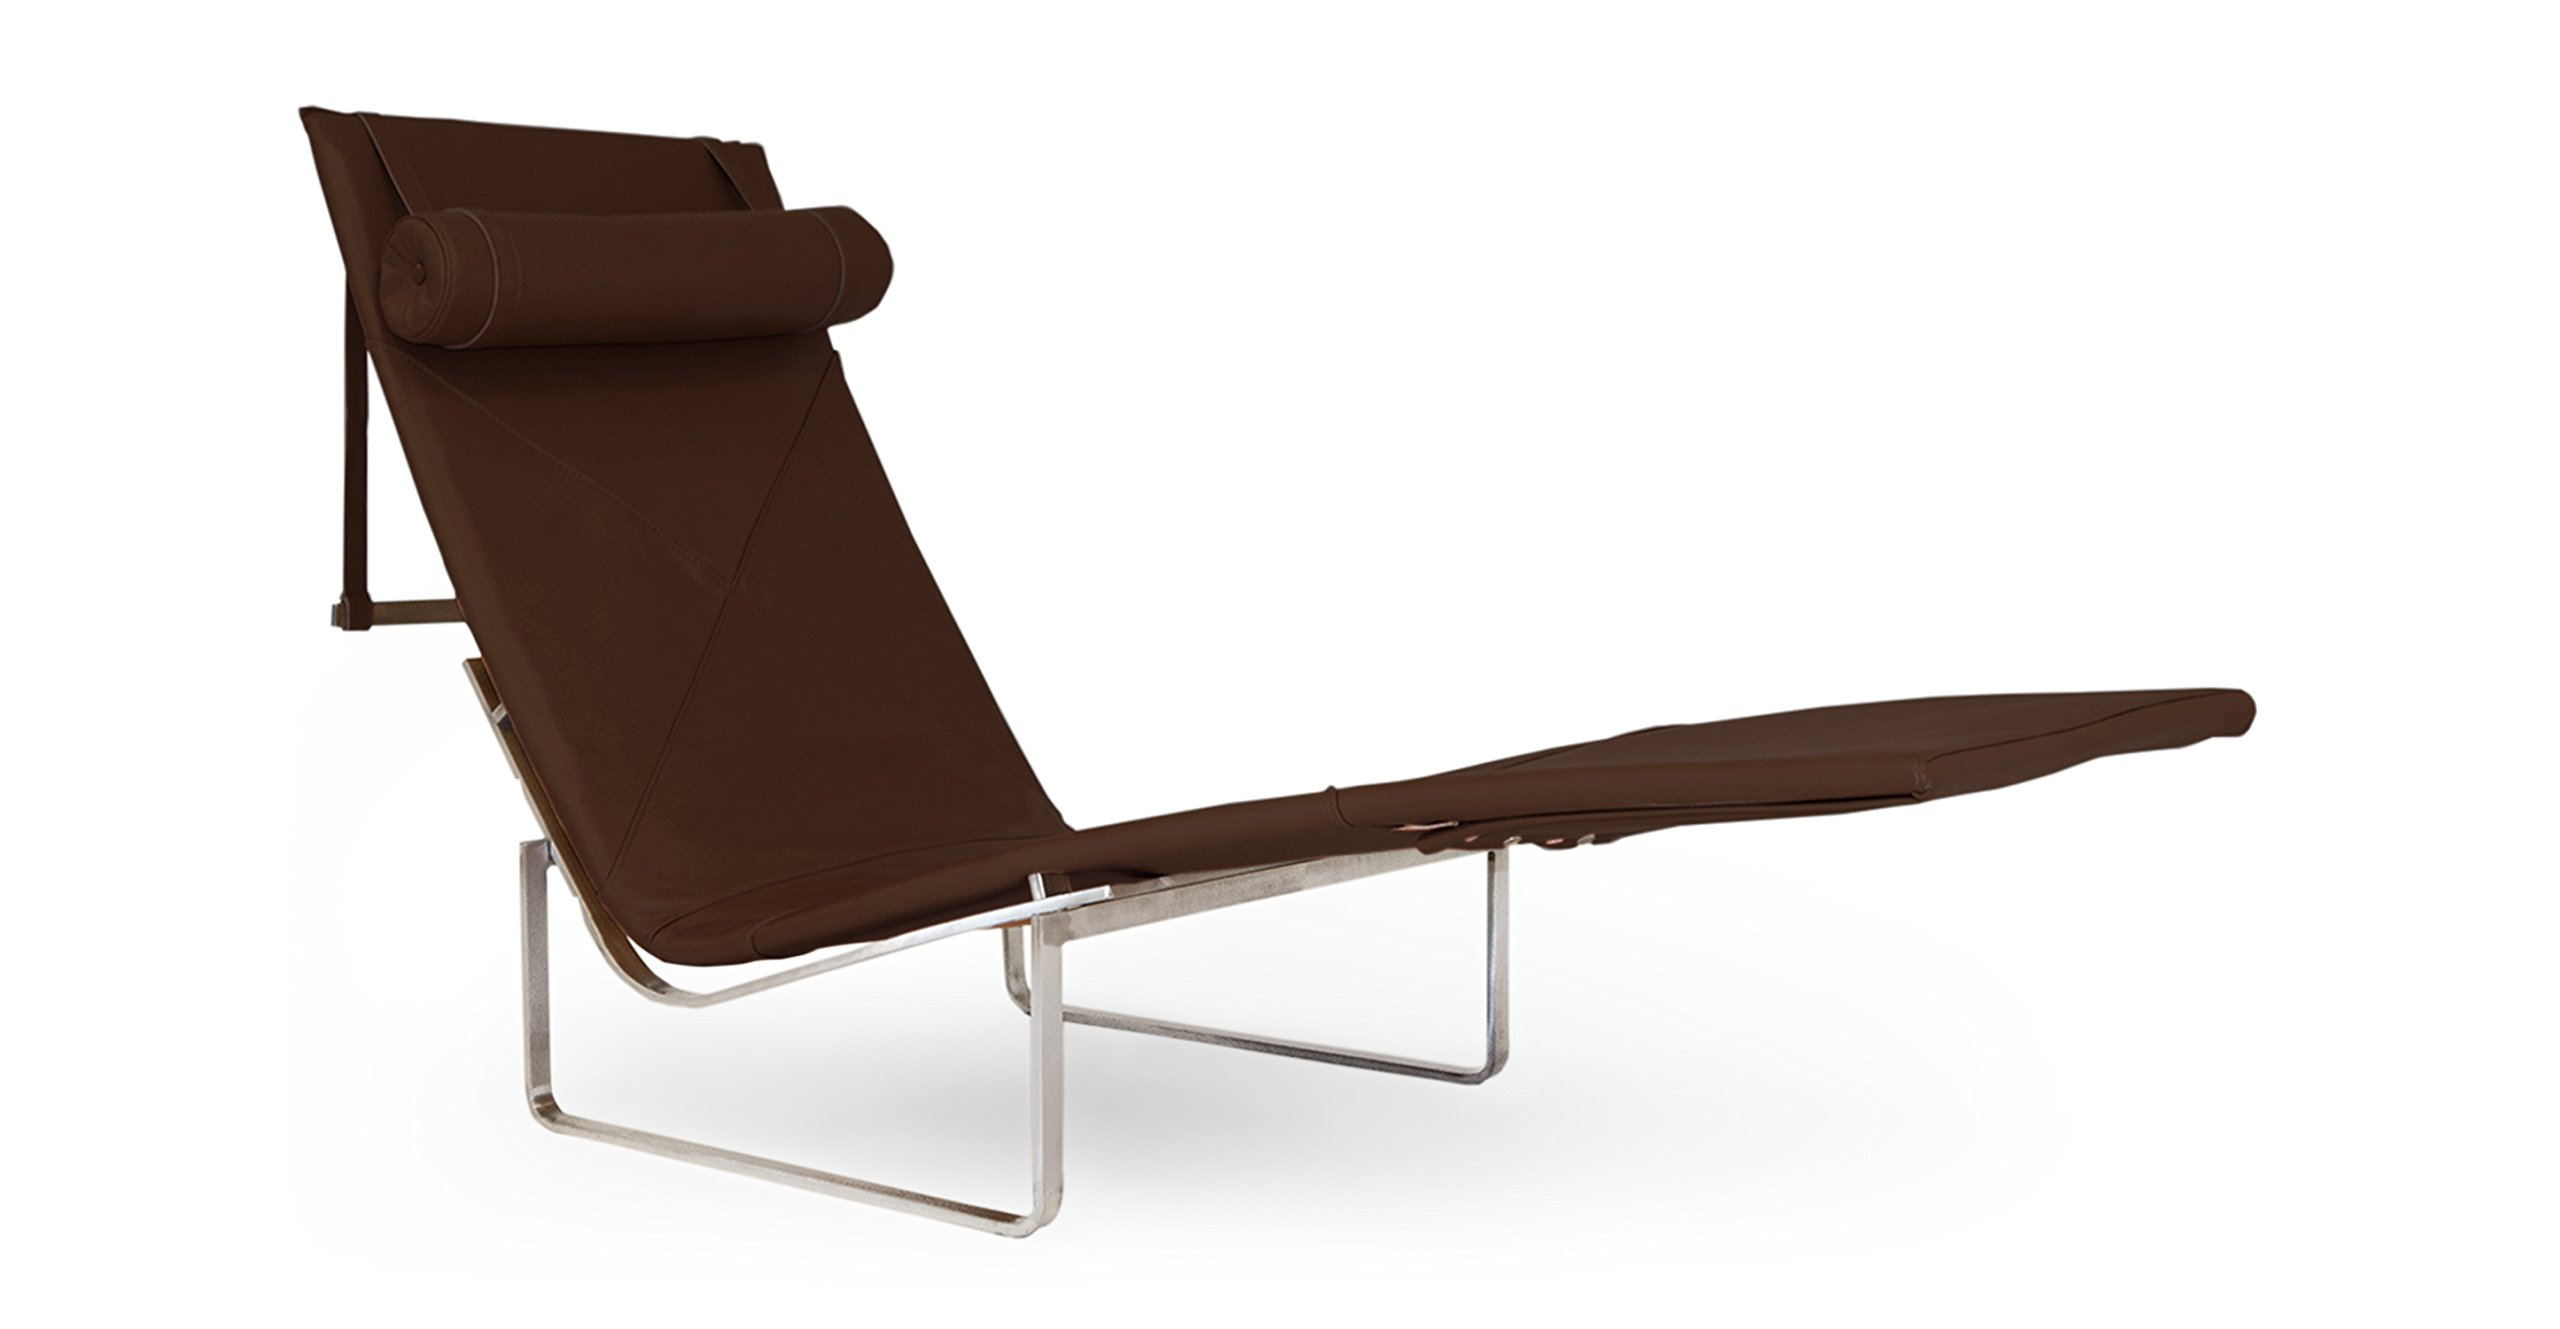 Kardiel PK24 Modern Chaise Lounge Chair, Coco Brown Aniline Leather/Stainless Steel